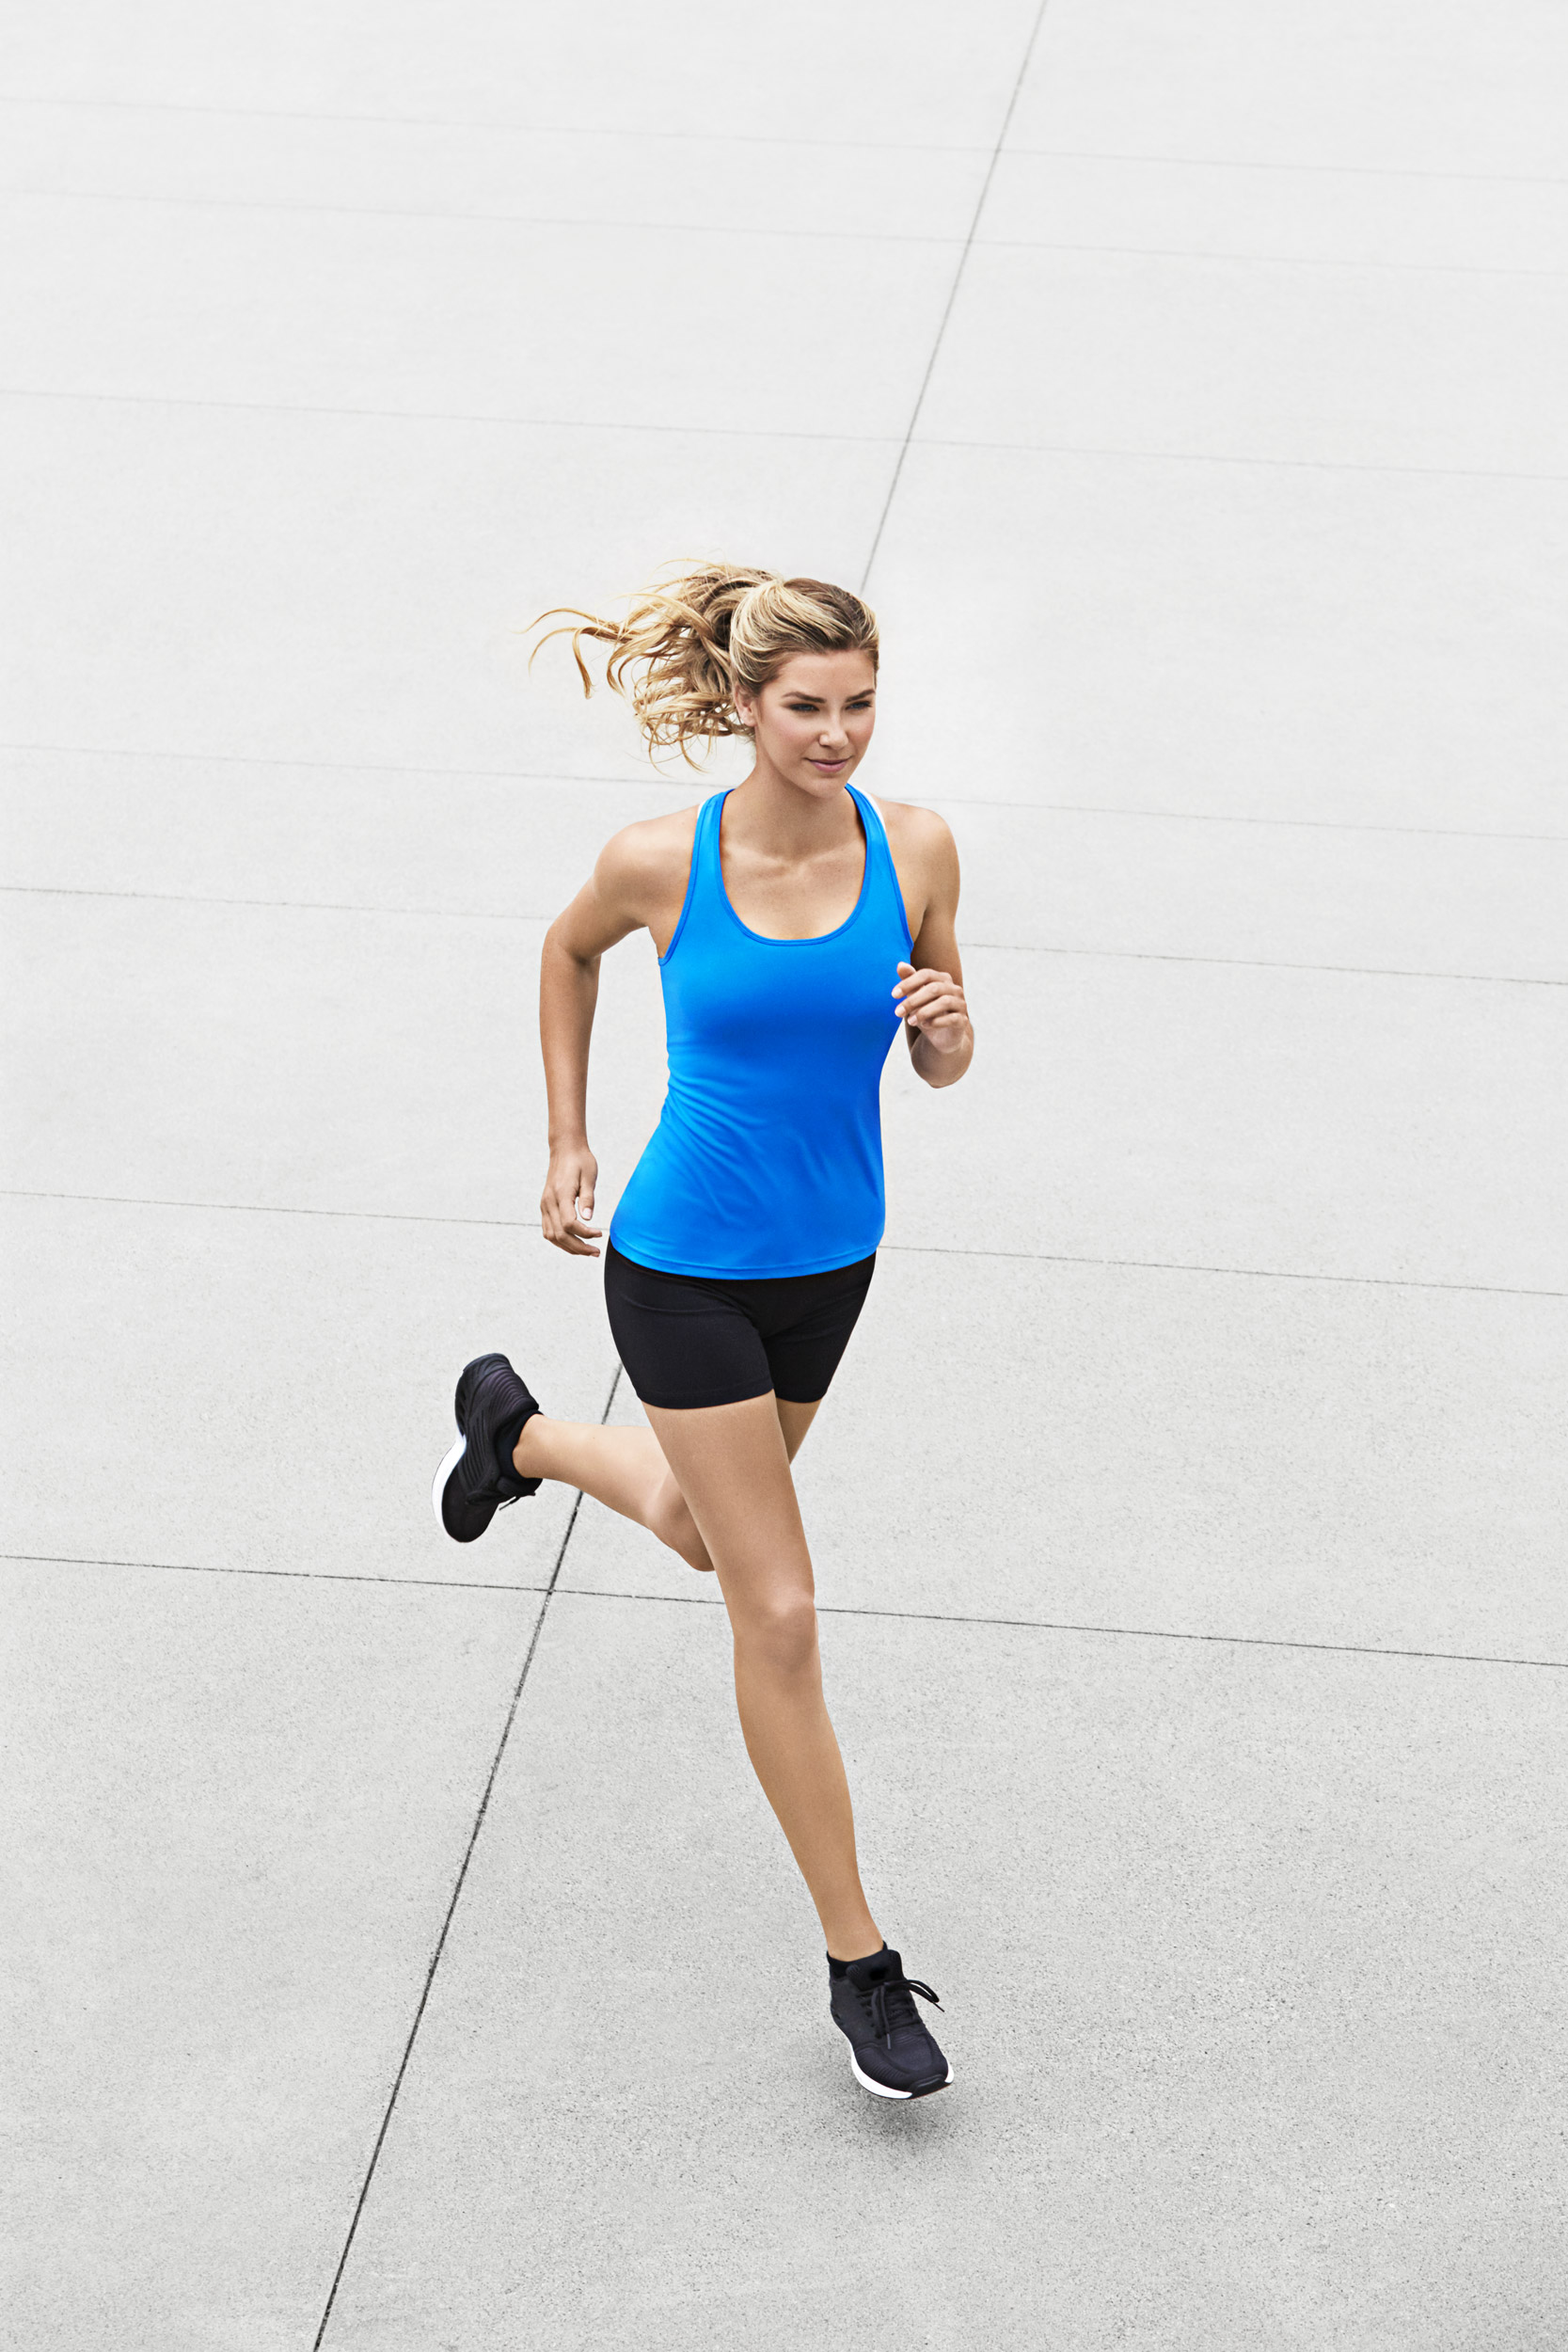 Woman in exercise clothes and a ponytail running in the street - Kimberly Genevieve Los Angeles Lifestyle Advertising Photographer